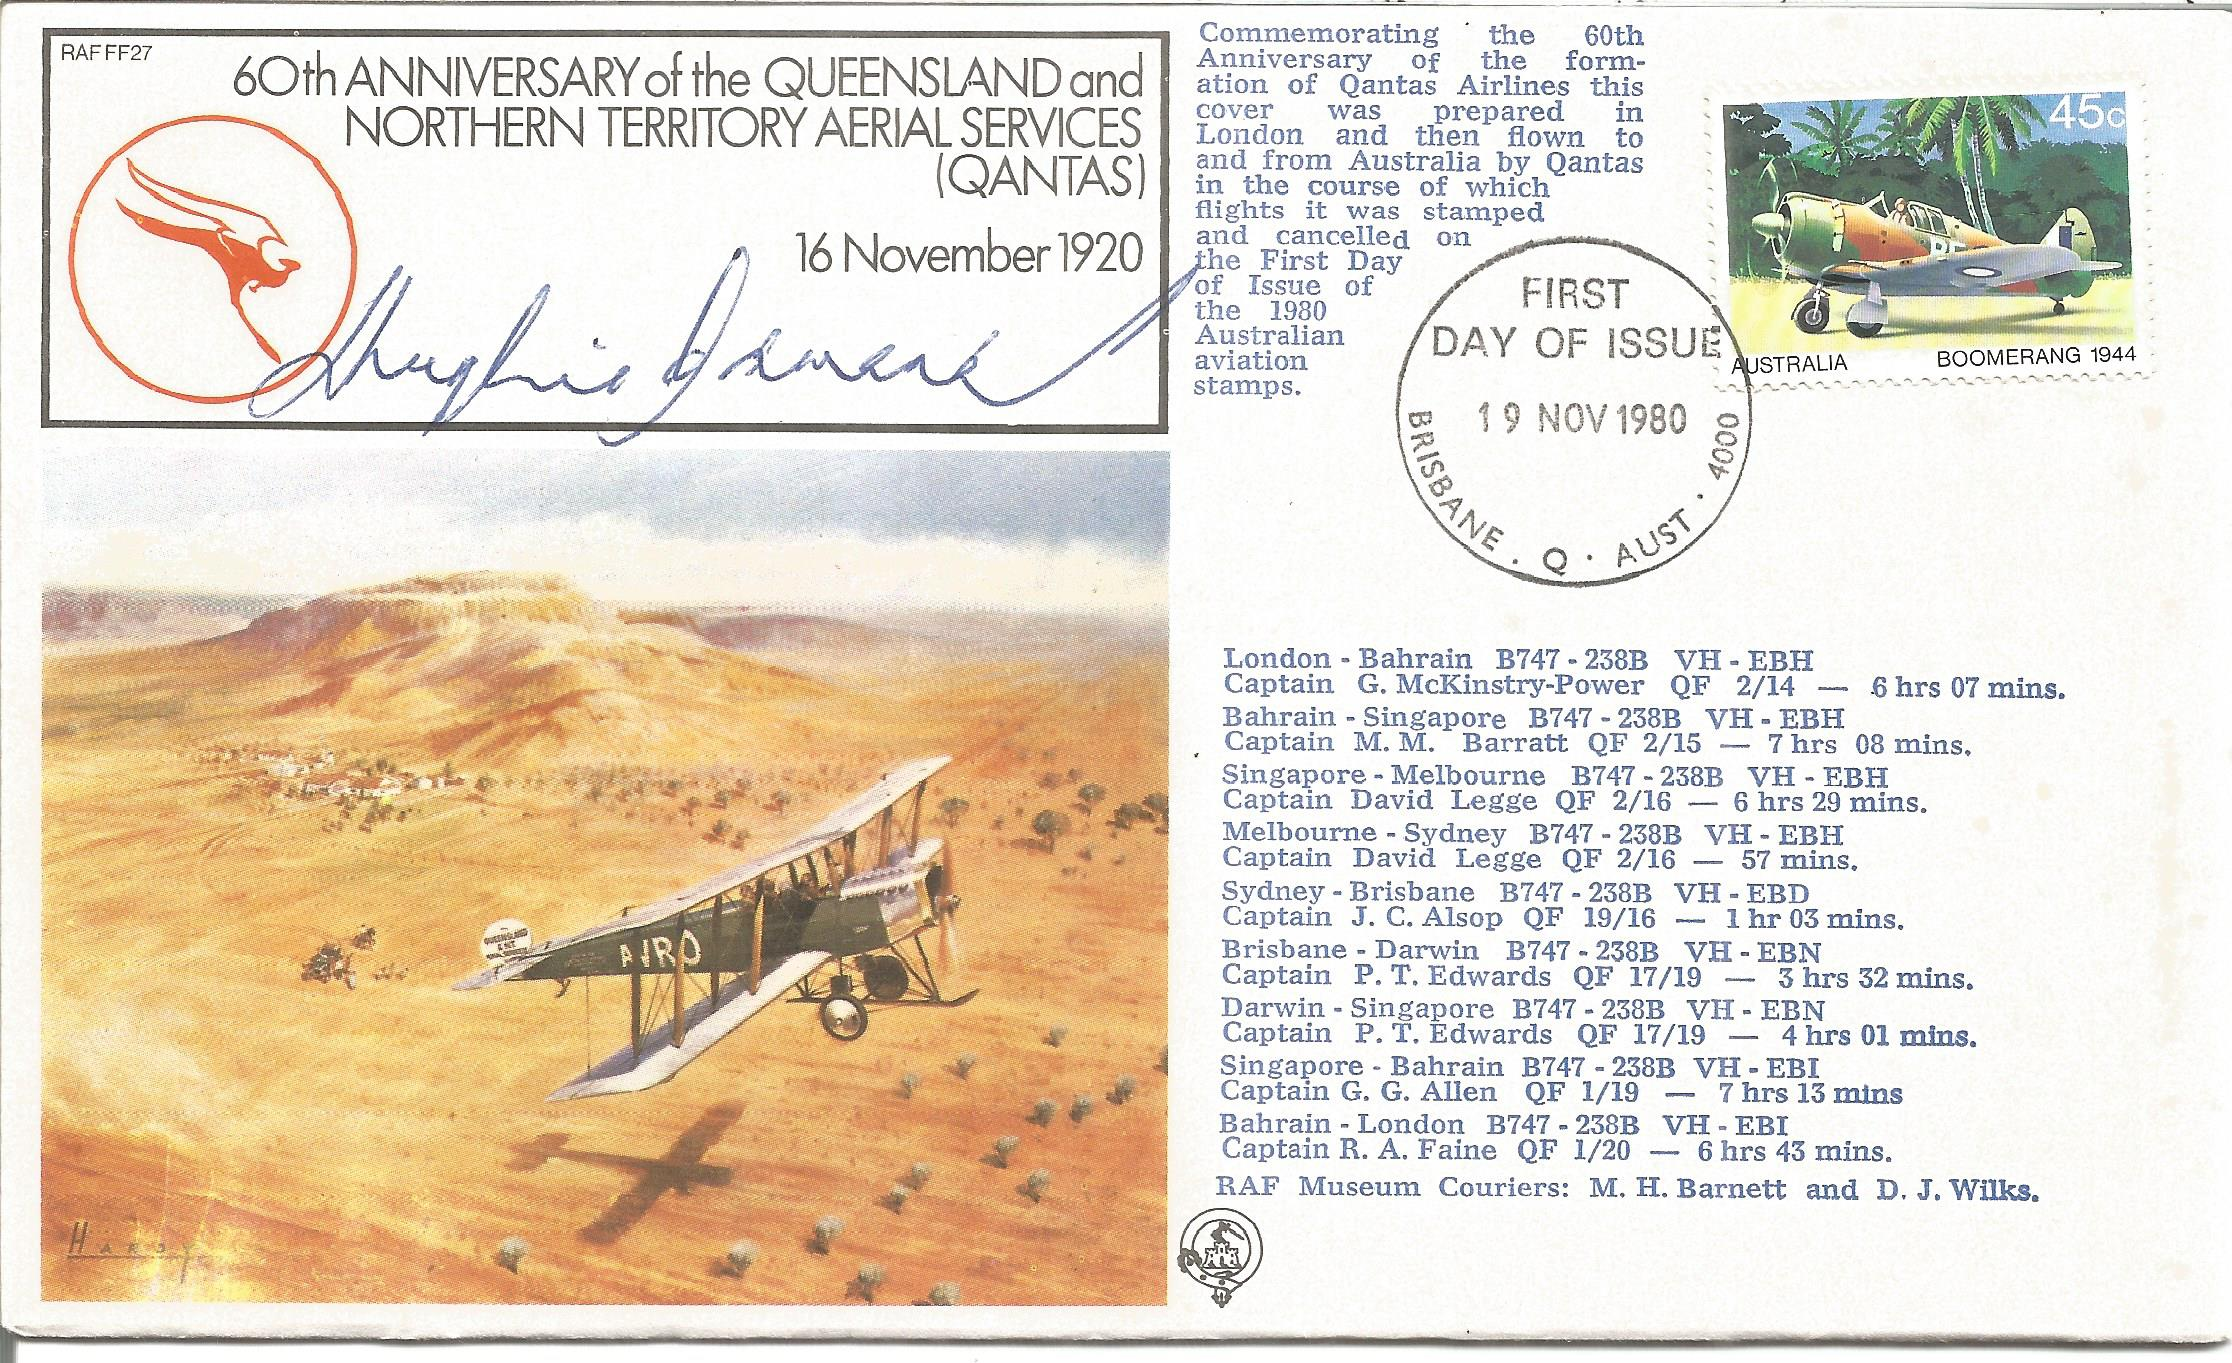 Air Cmdr. Sir Hughie Idwal Edwards VC KCMG CB OBE DFC signed 60th Anniversary of the Queensland